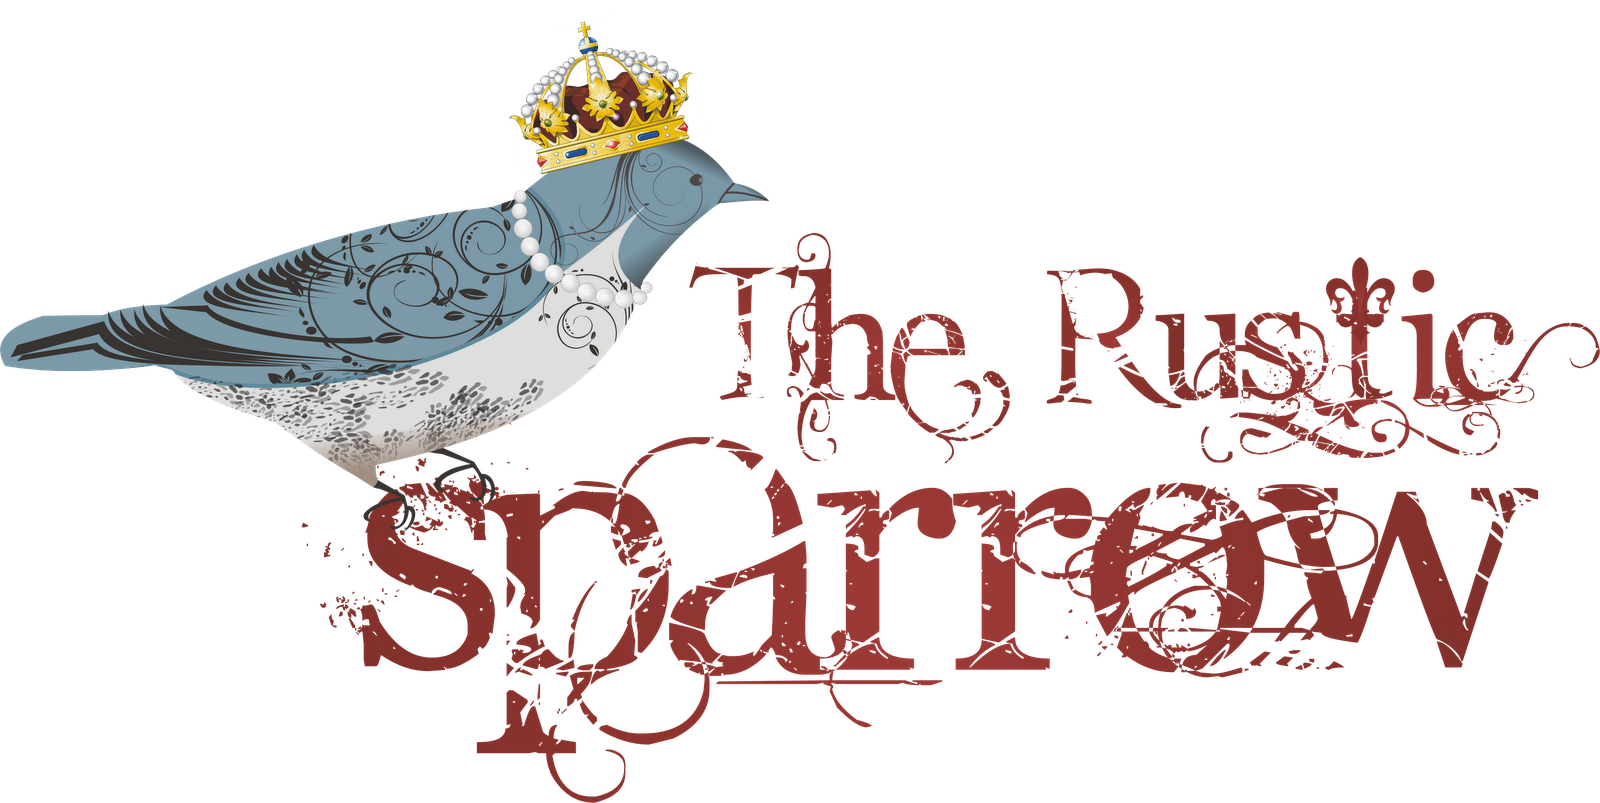 The Rustic Sparrow